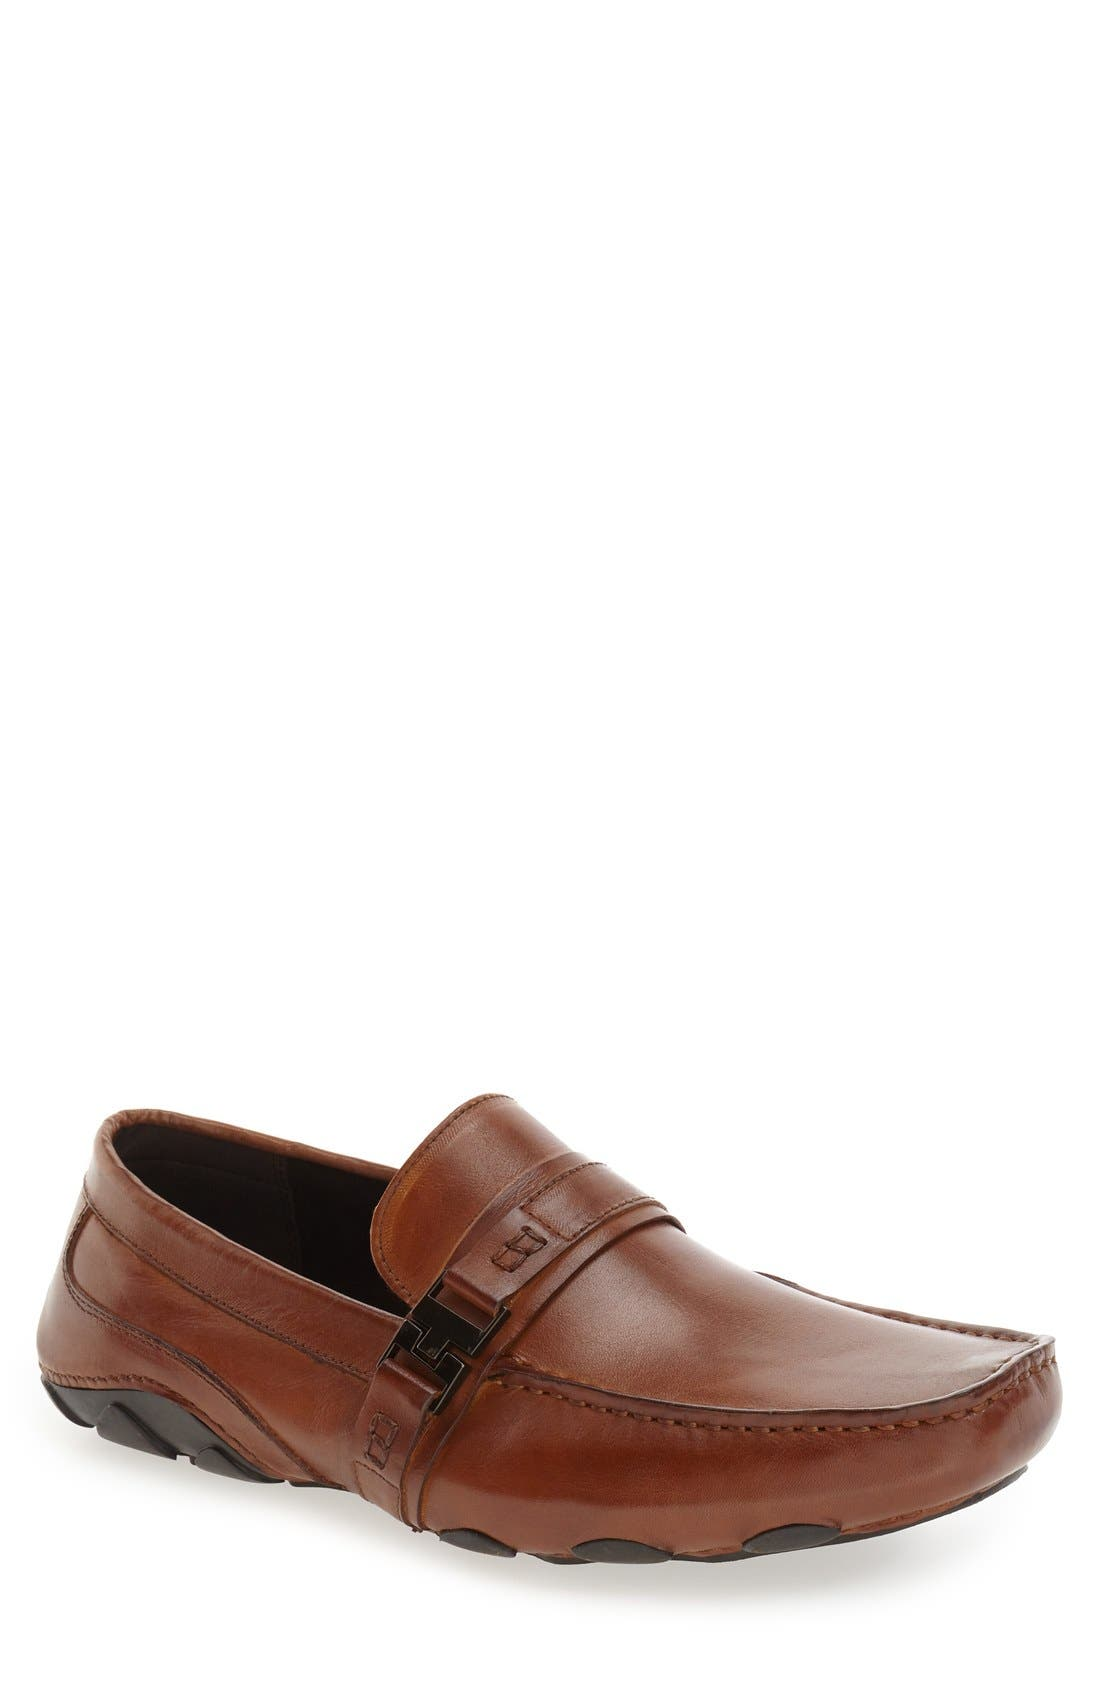 Reaction Kenneth Cole 'Toast 2 Me' Driving Shoe (Men)